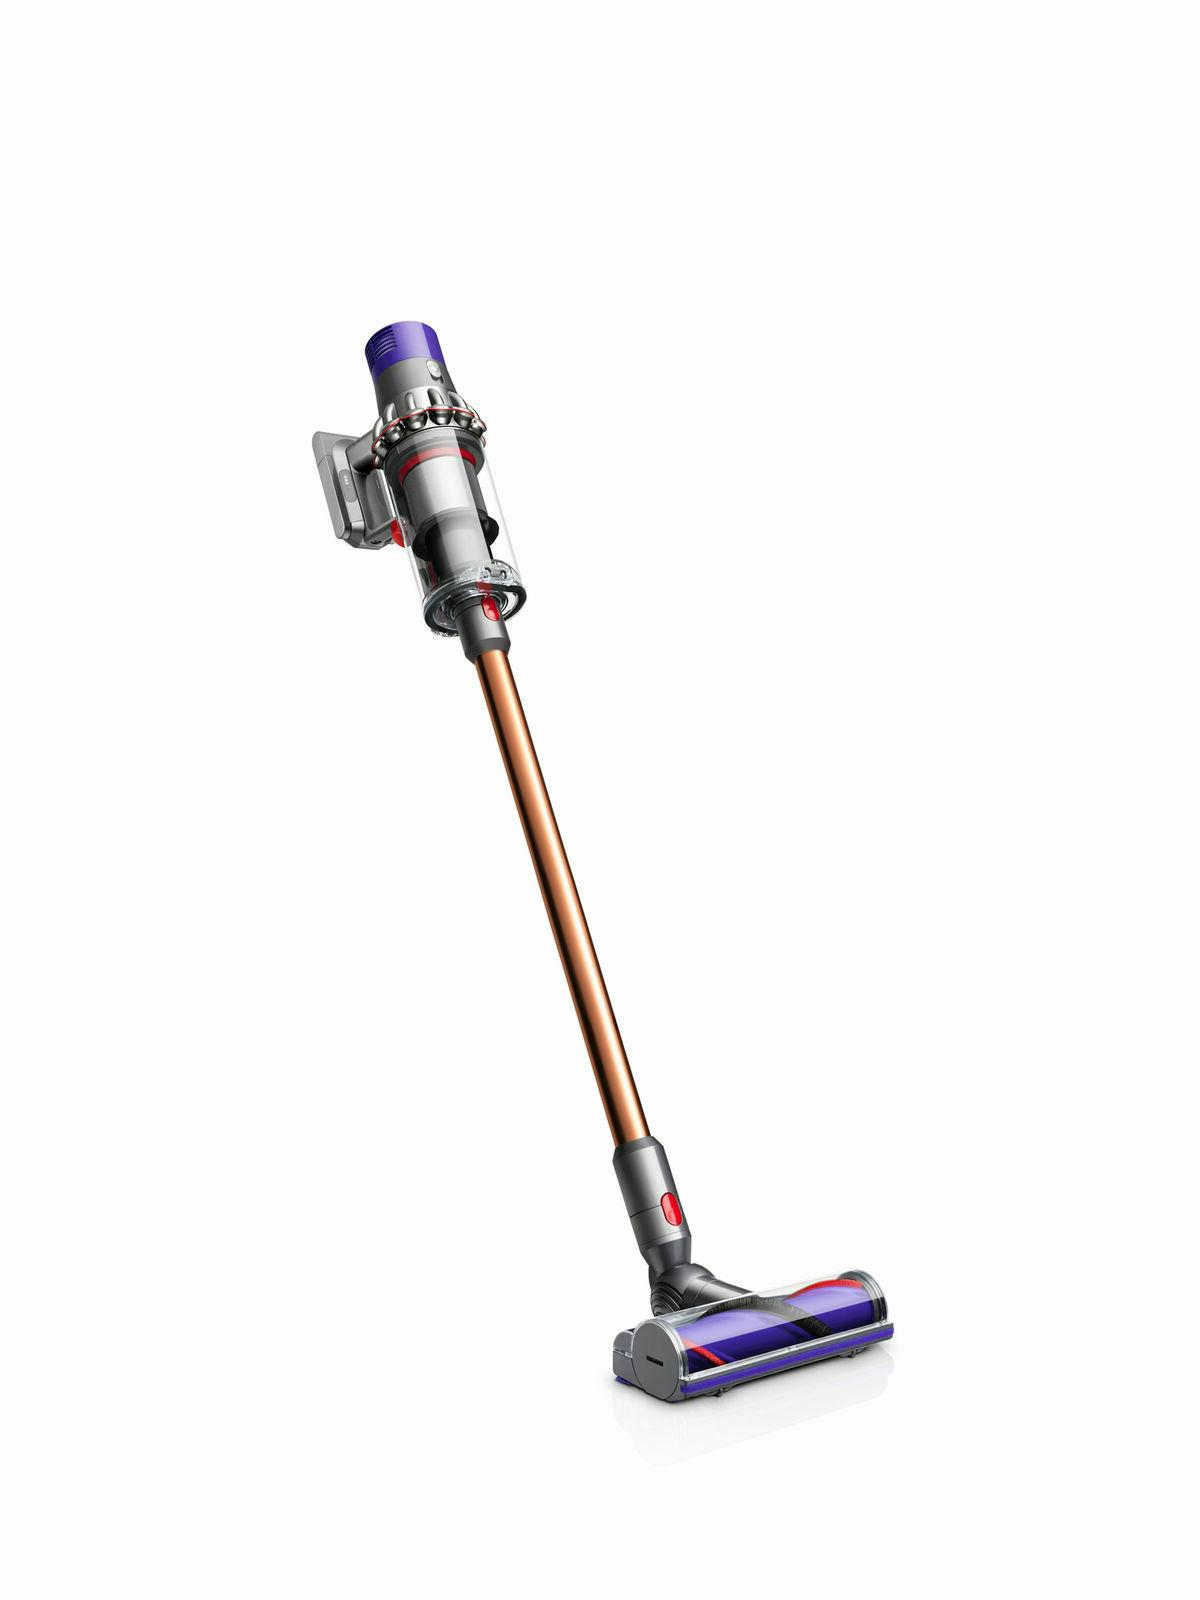 Dyson Cyclone pro wireless vacuum cleaner with